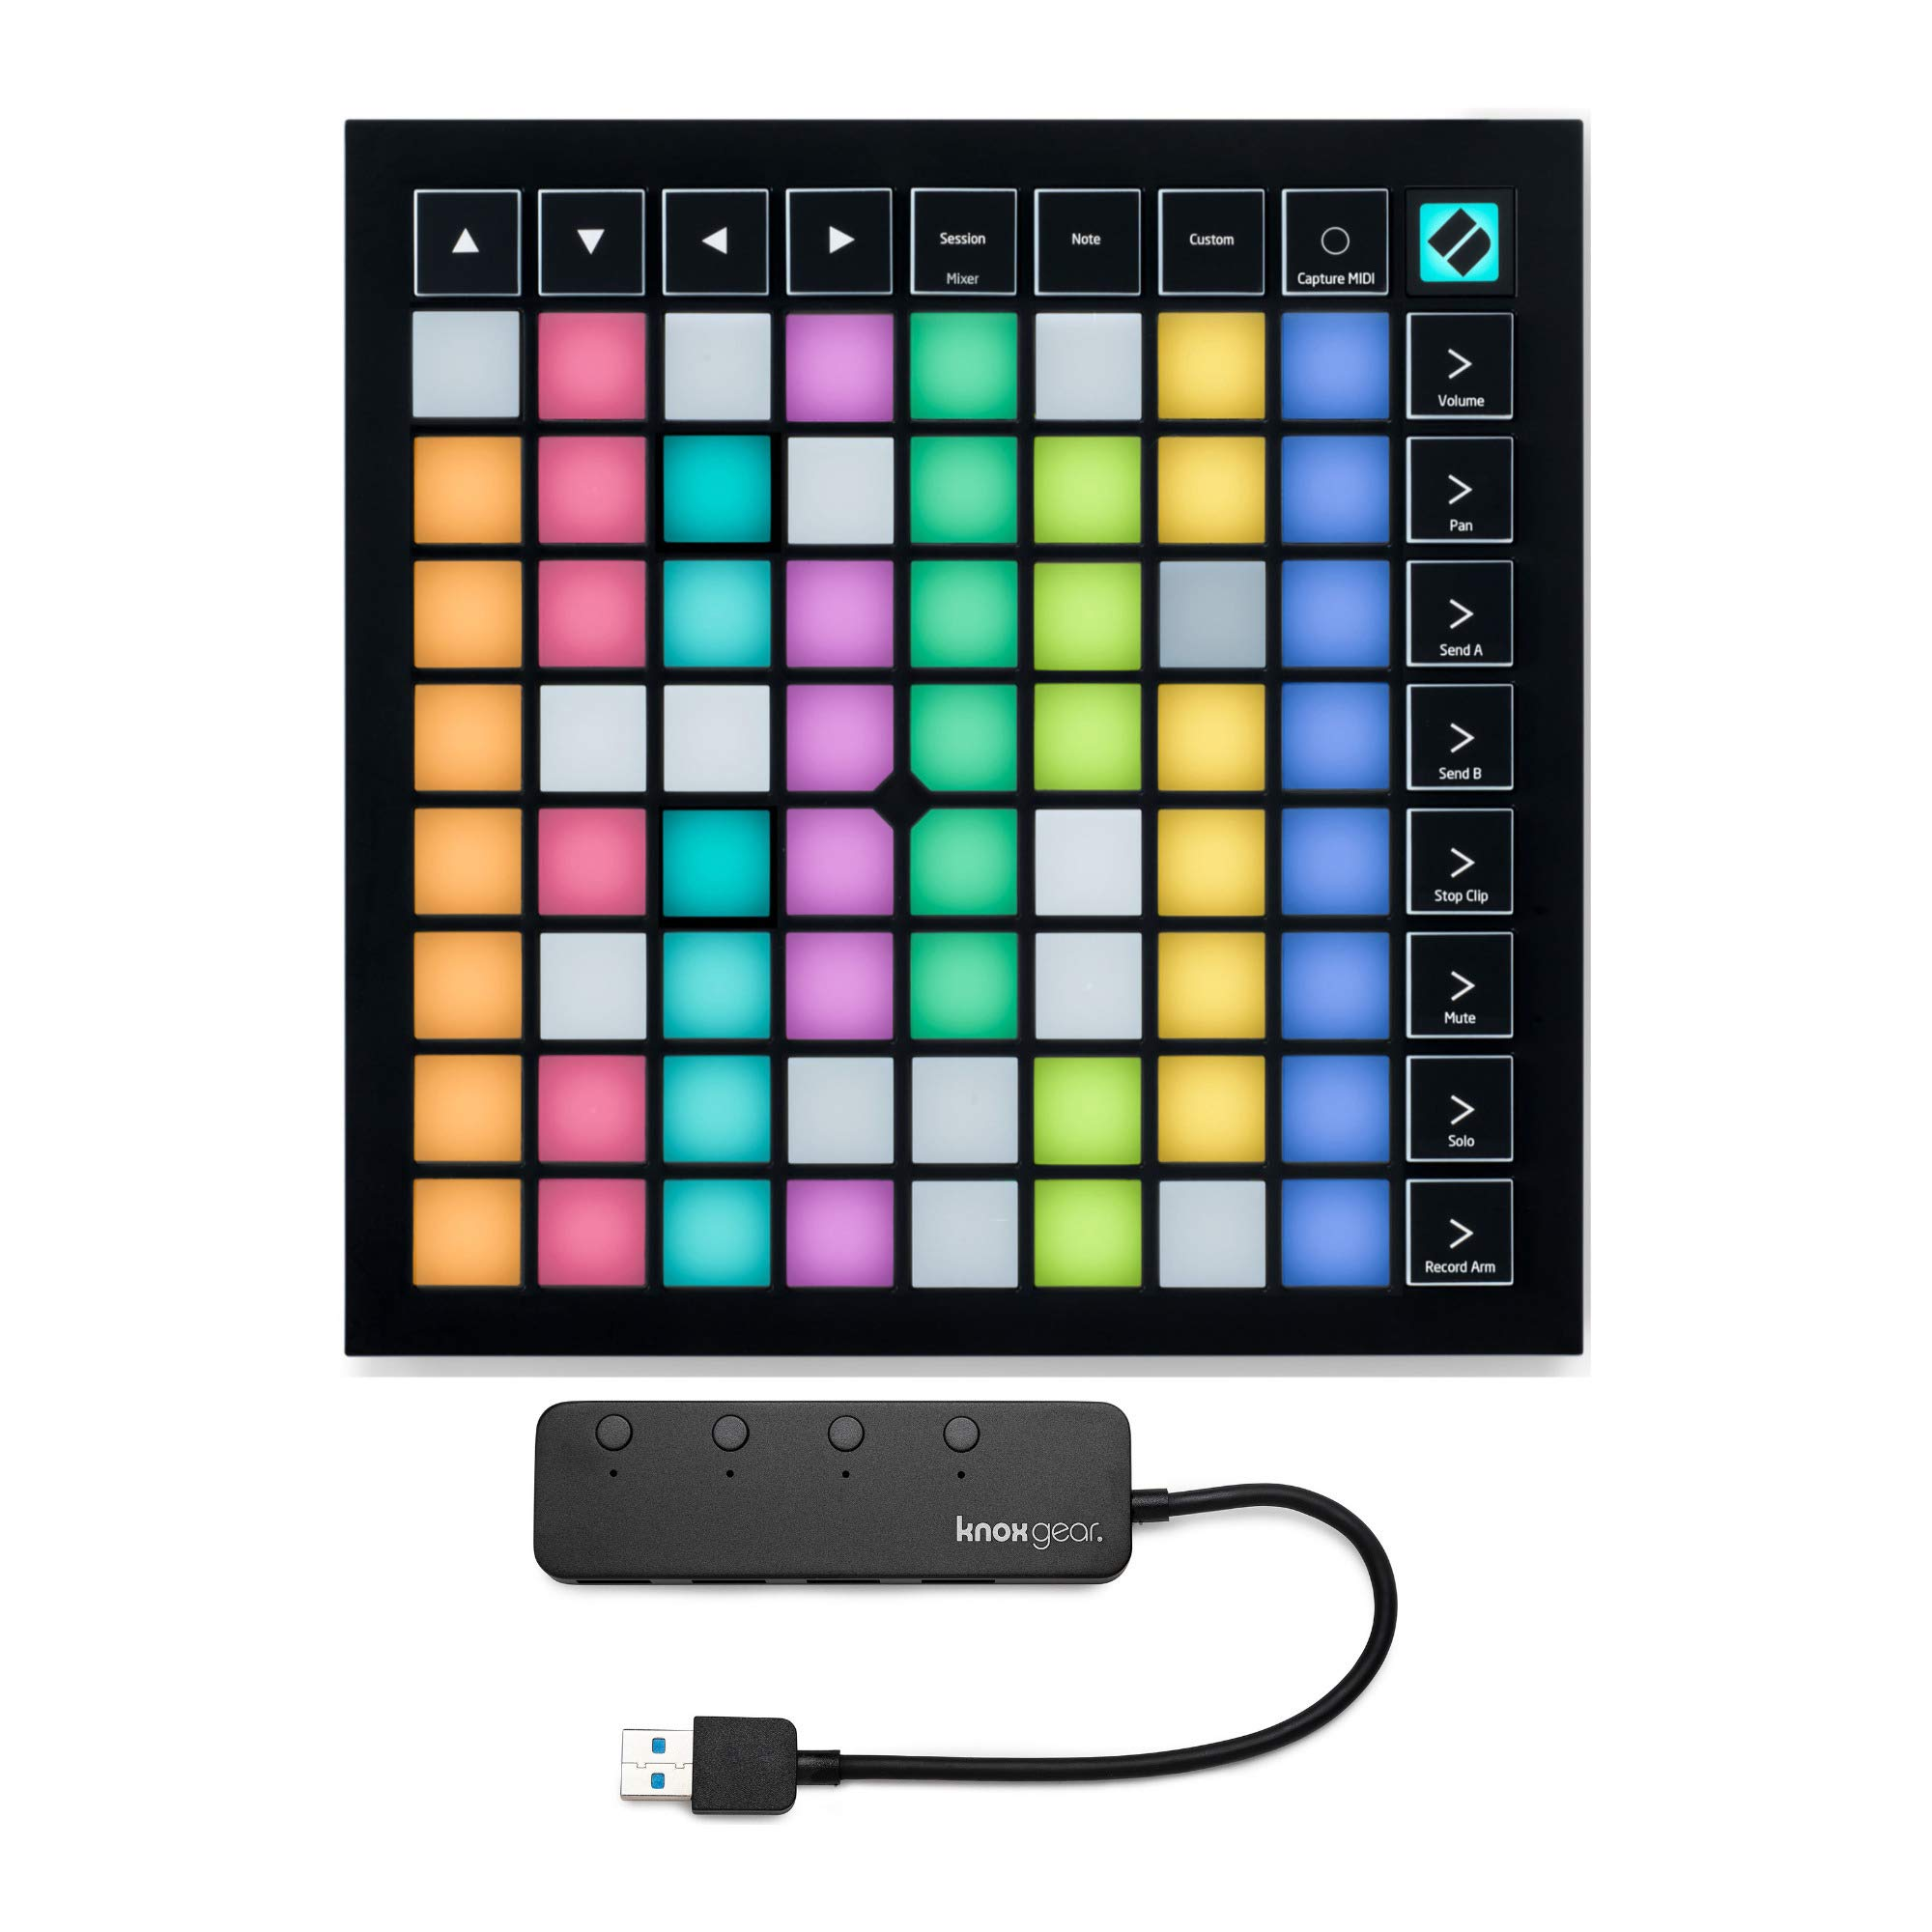 Novation Launchpad X Grid Controller for Ableton Live with Knox 3.0 4 Port USB HUB (2 Items) by Novation